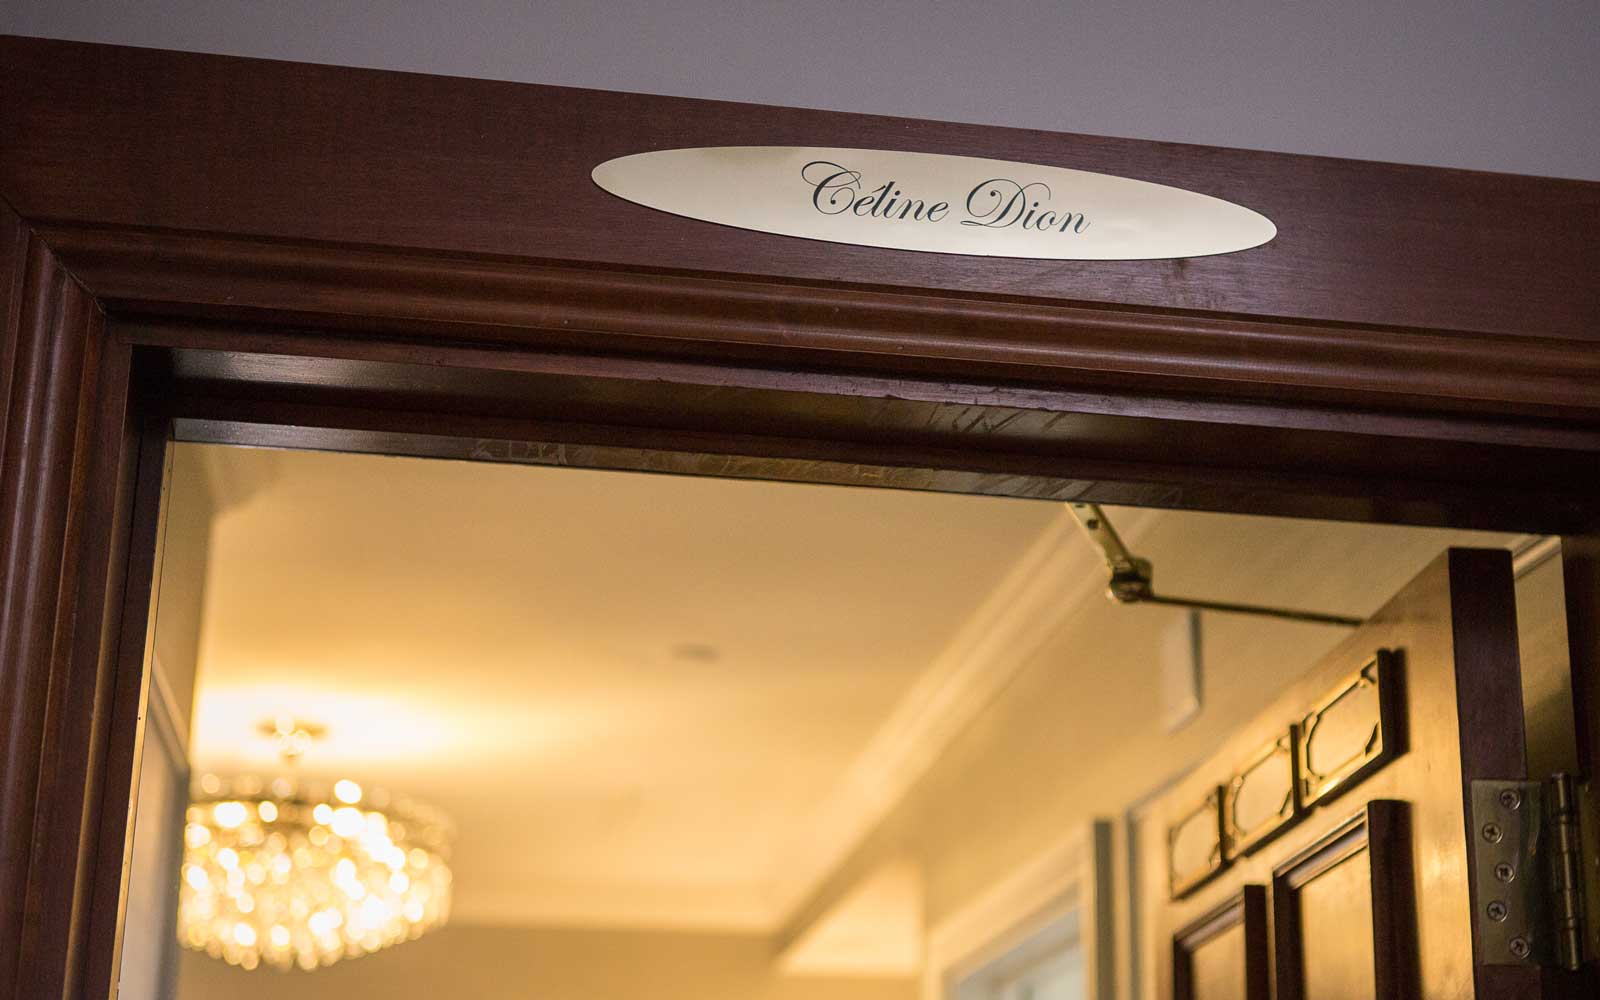 The Celine Dion Suite at This Canadian Hotel Will Make Your Heart Go On